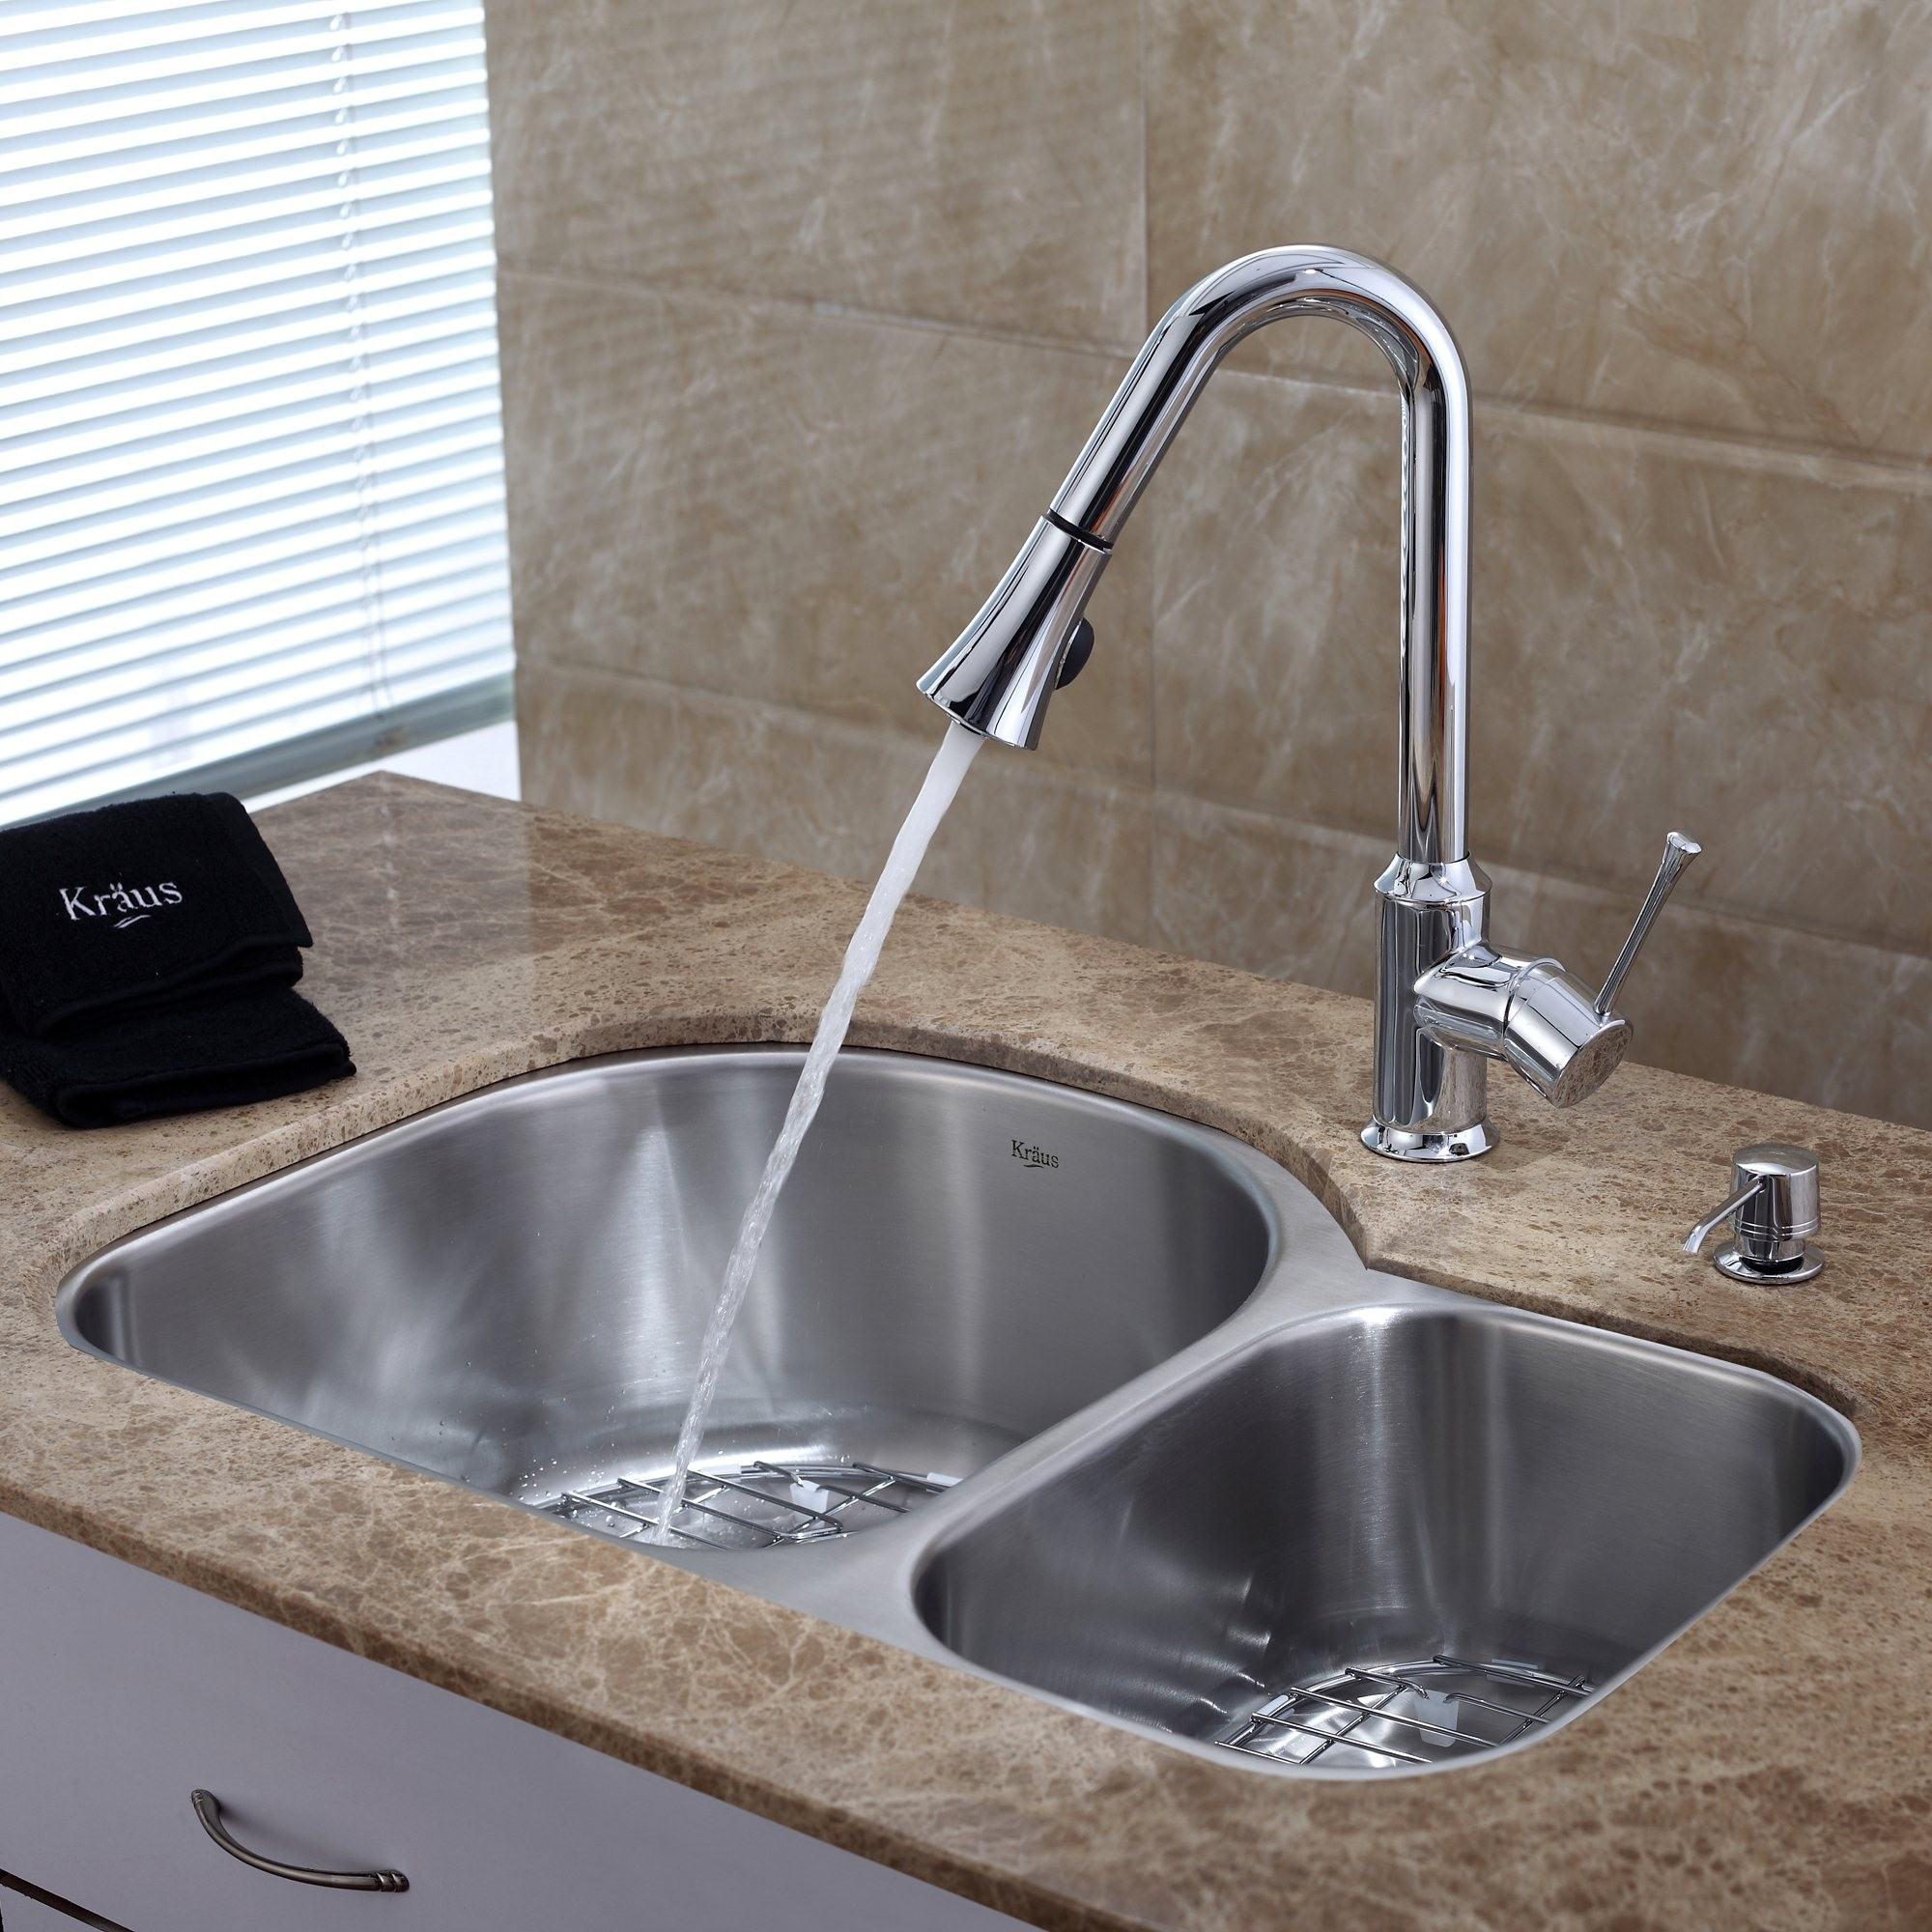 Permalink to Undermount Kitchen Sink And Faucet Set